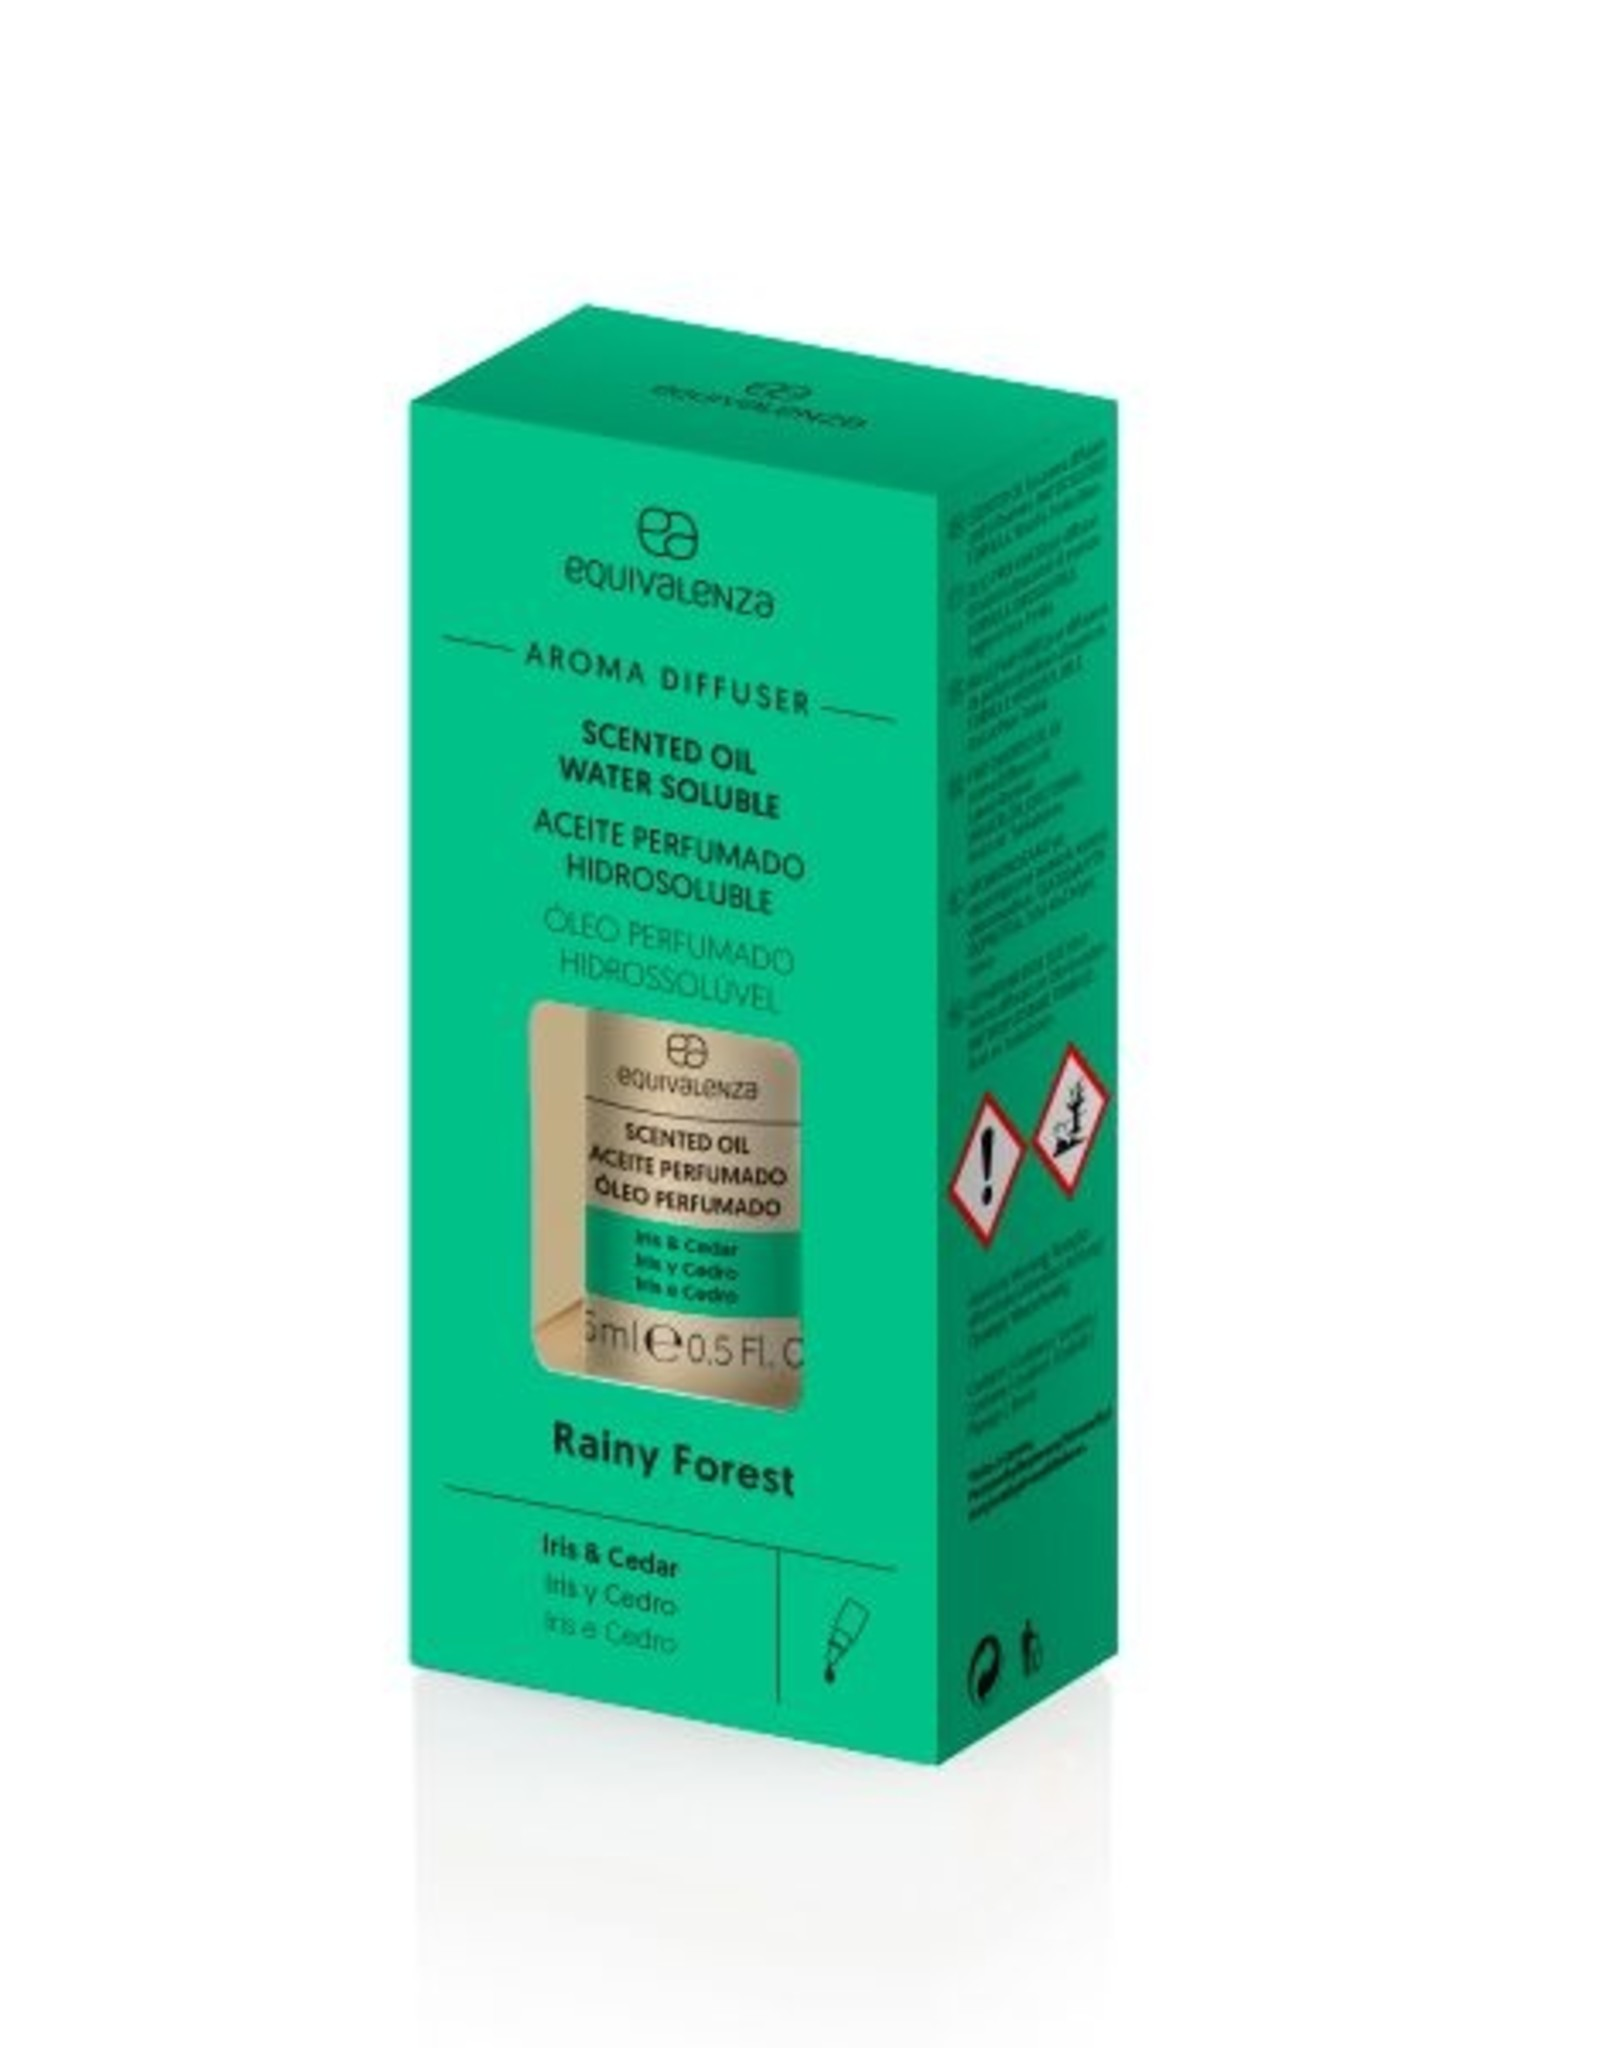 Equivalenza Water-Soluble Scented Oil  – Rainy Forest (iris and cedar)